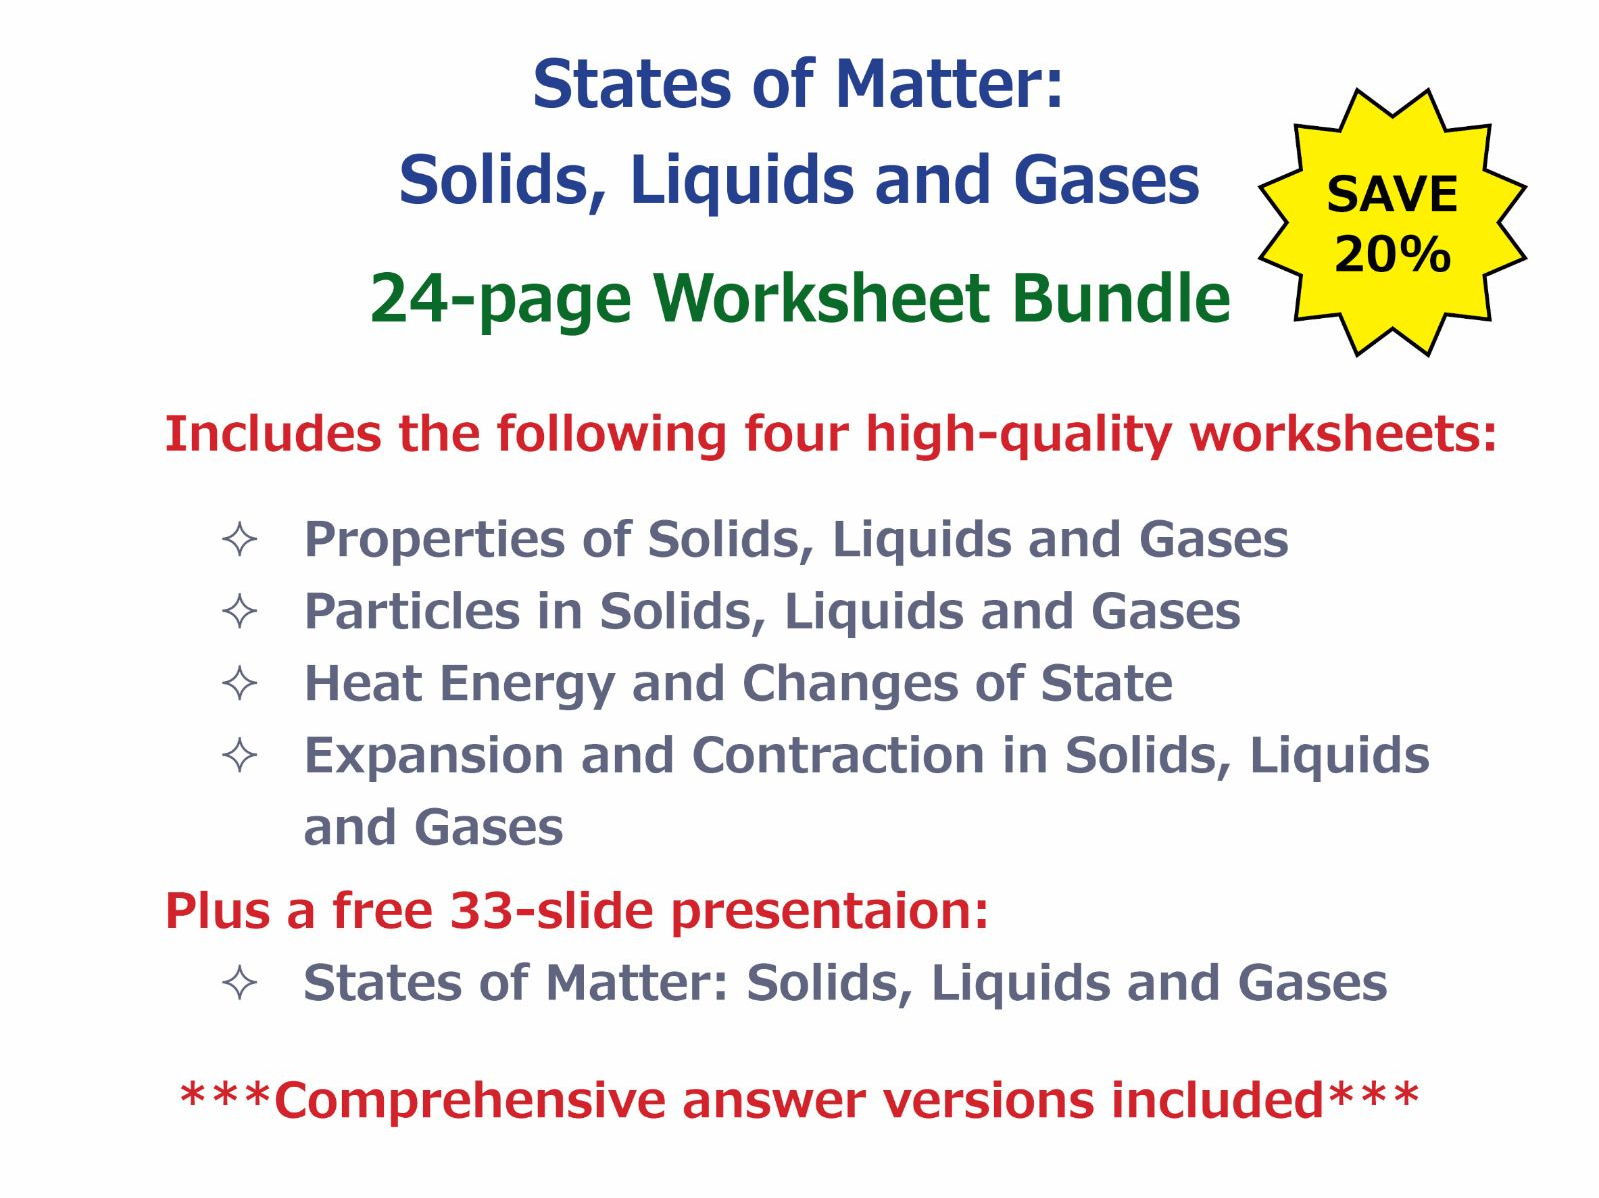 States Of Matter Solids Liquids And Gases Worksheet Bundle By Goodscienceworksheets